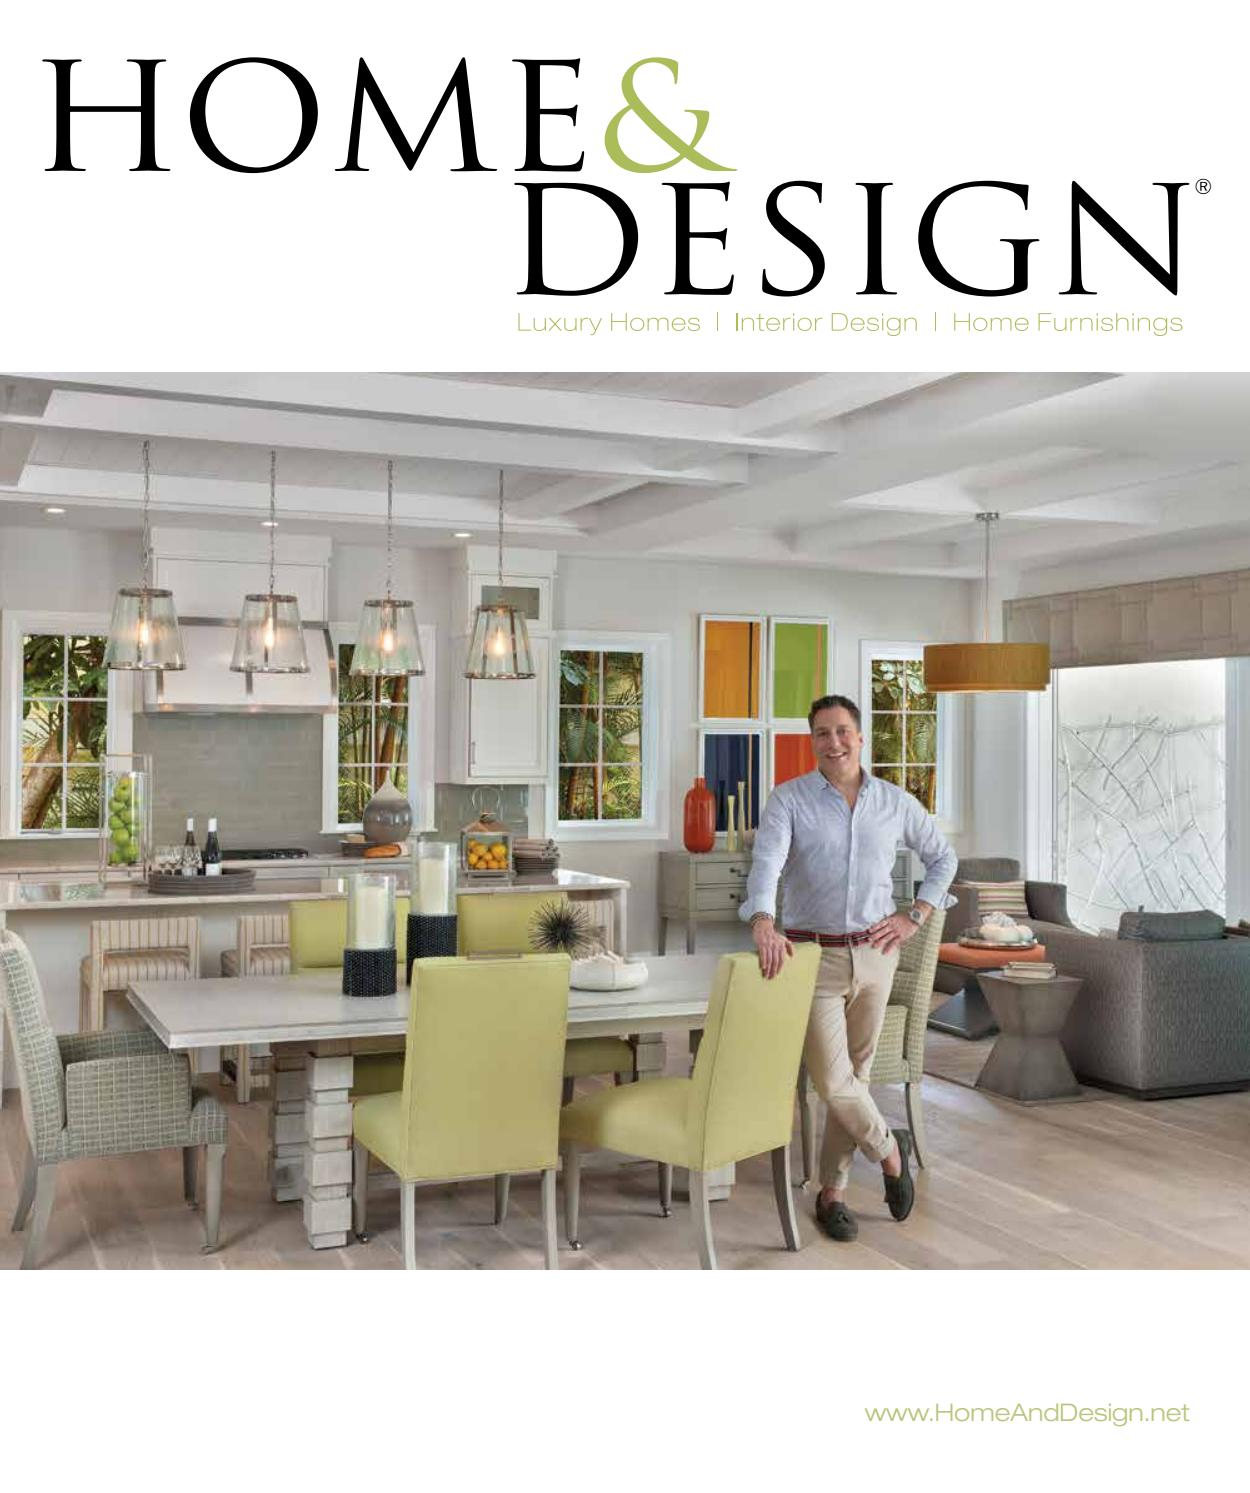 Home u0026 Design Magazine 2016 Southwest Florida